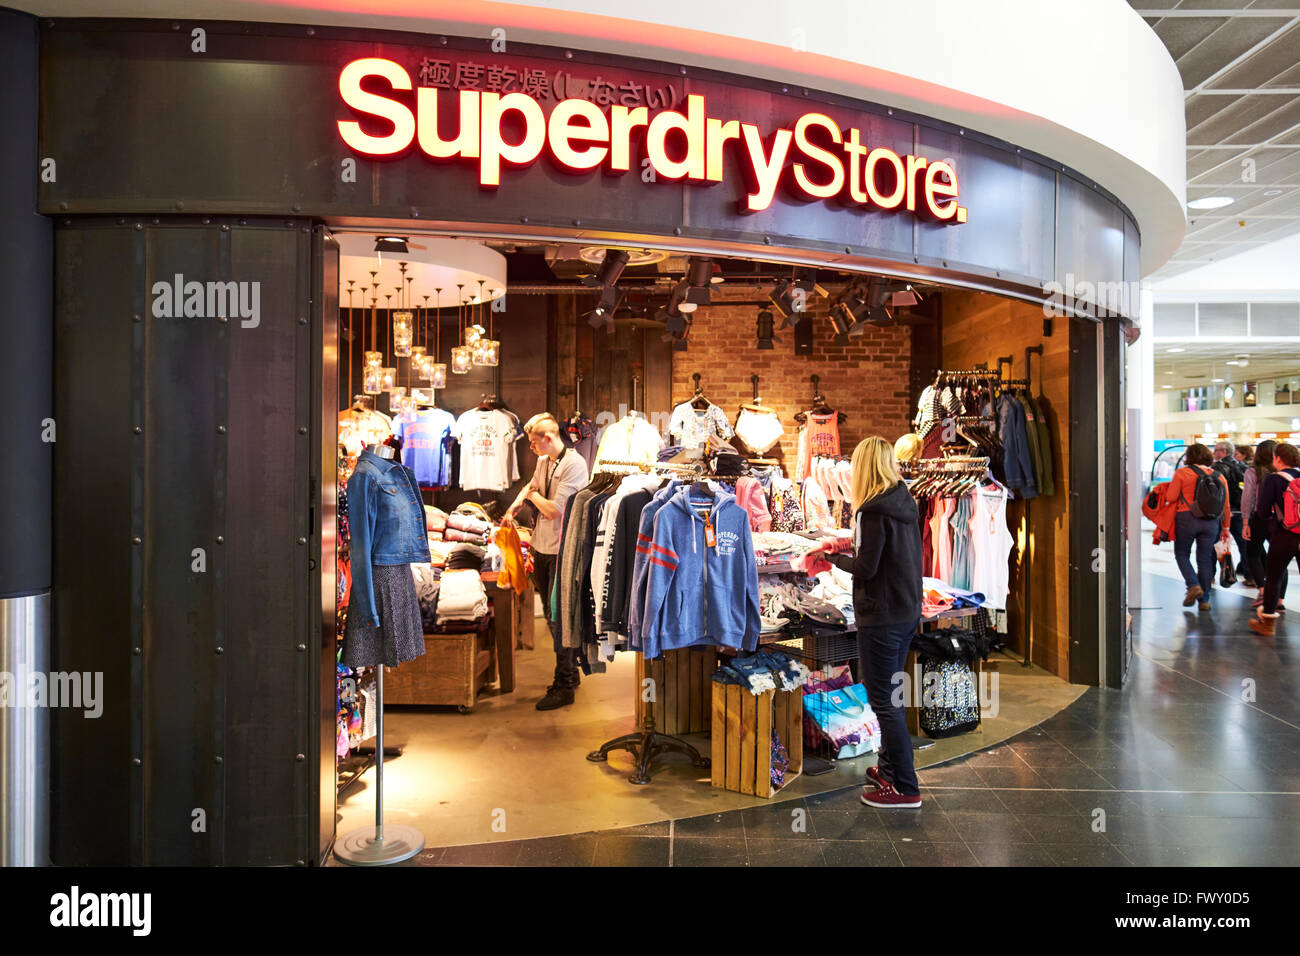 Super 10 clothing store